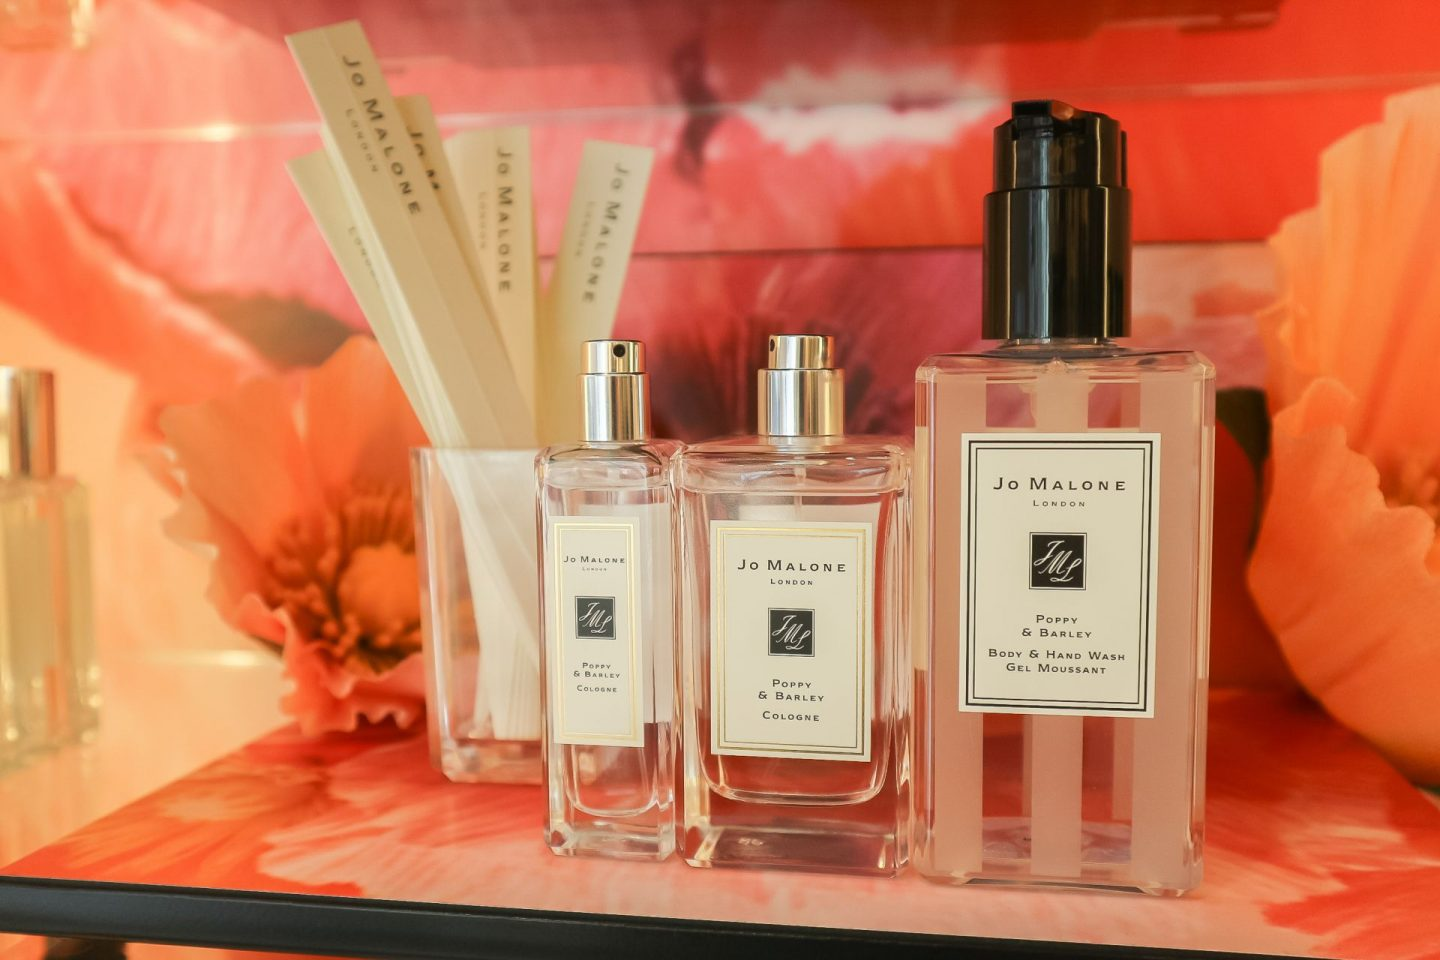 jo malone poppy and barley